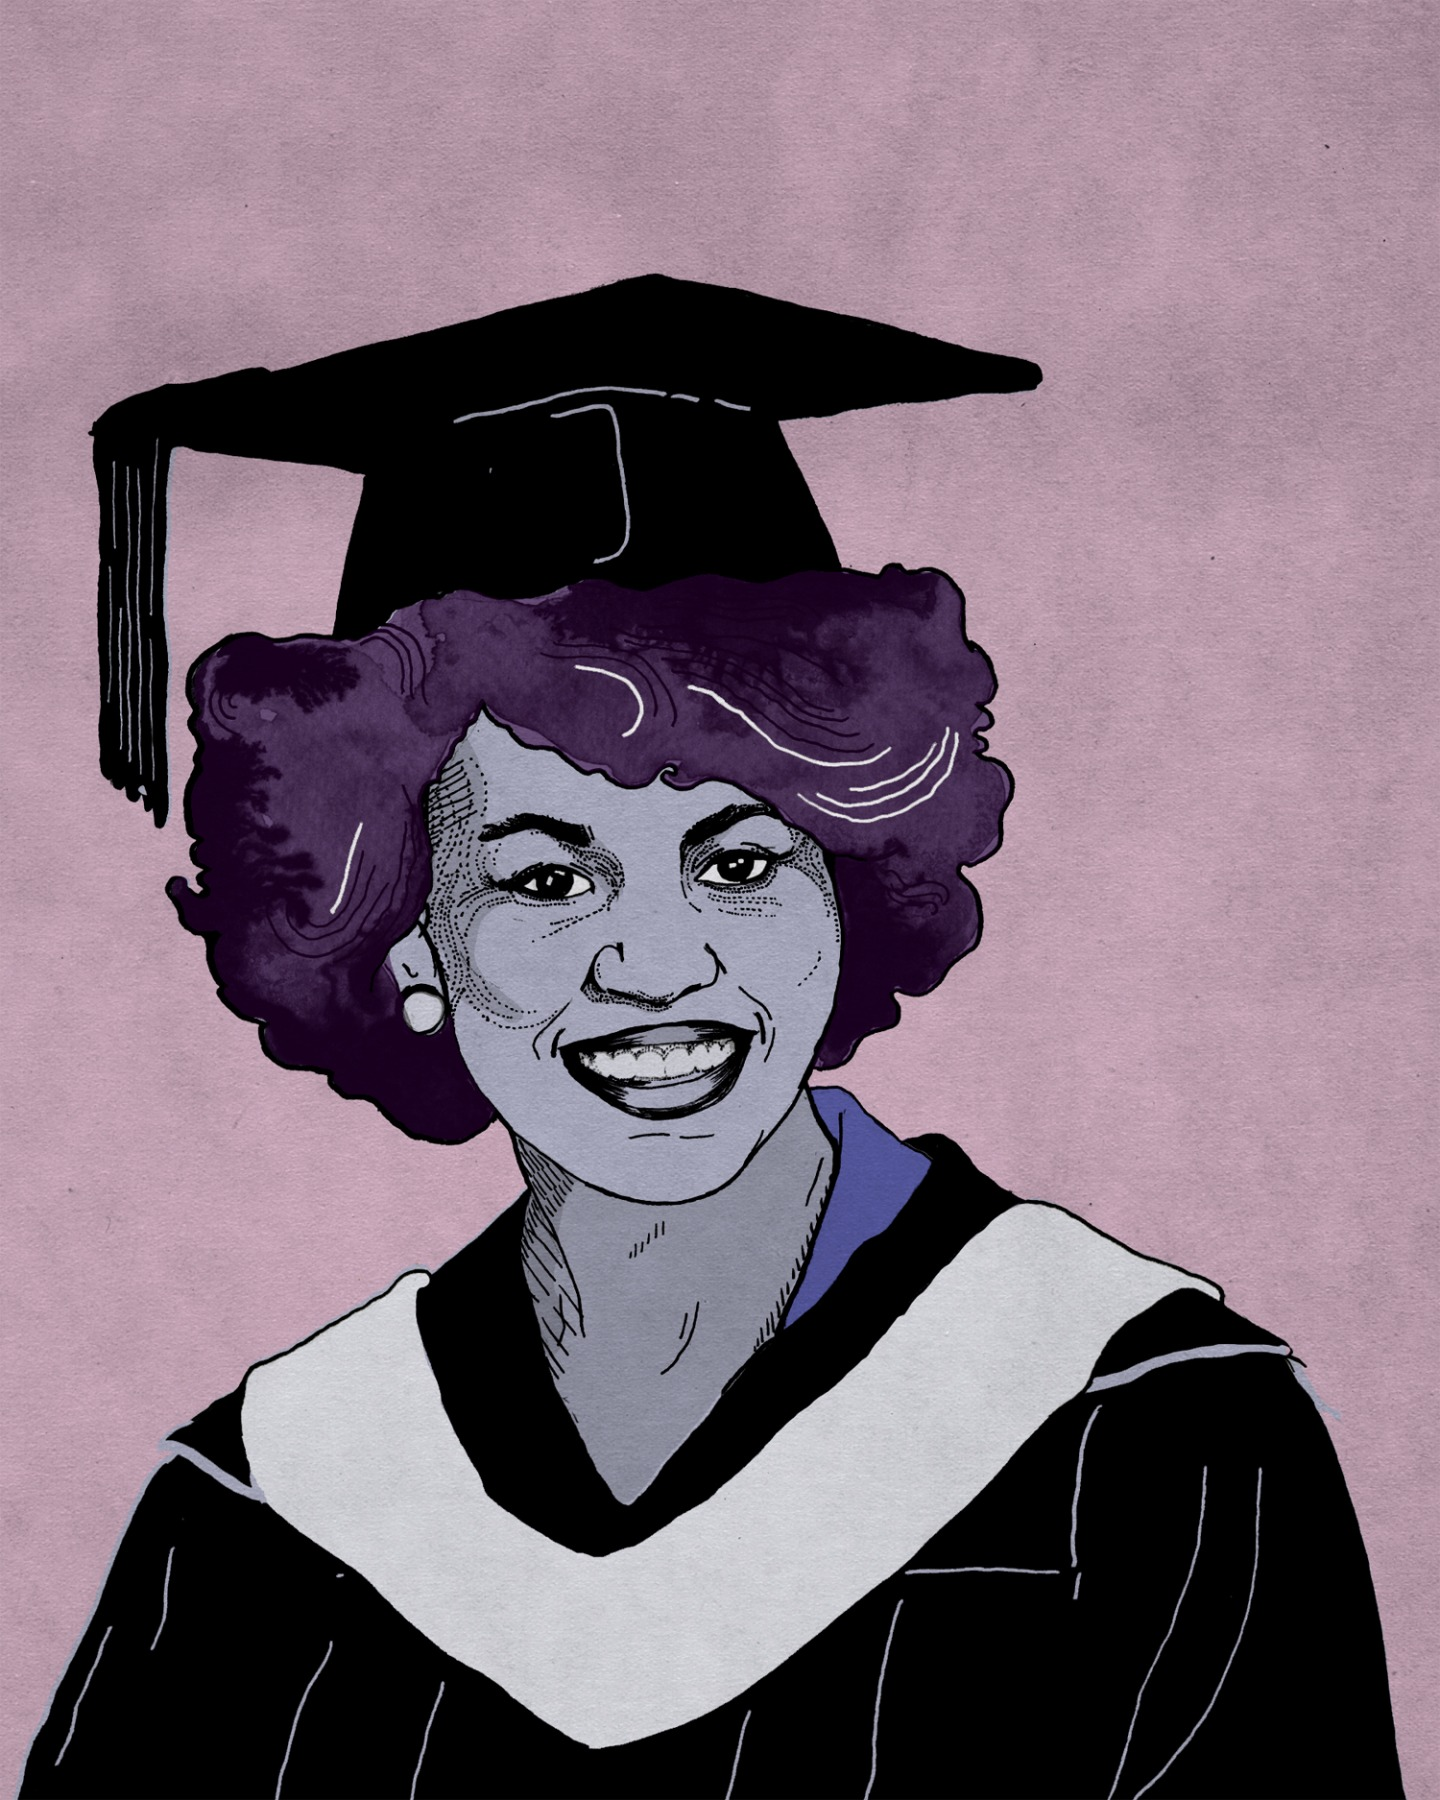 Michelle Obama On The Life-Changing Power Of Going To College